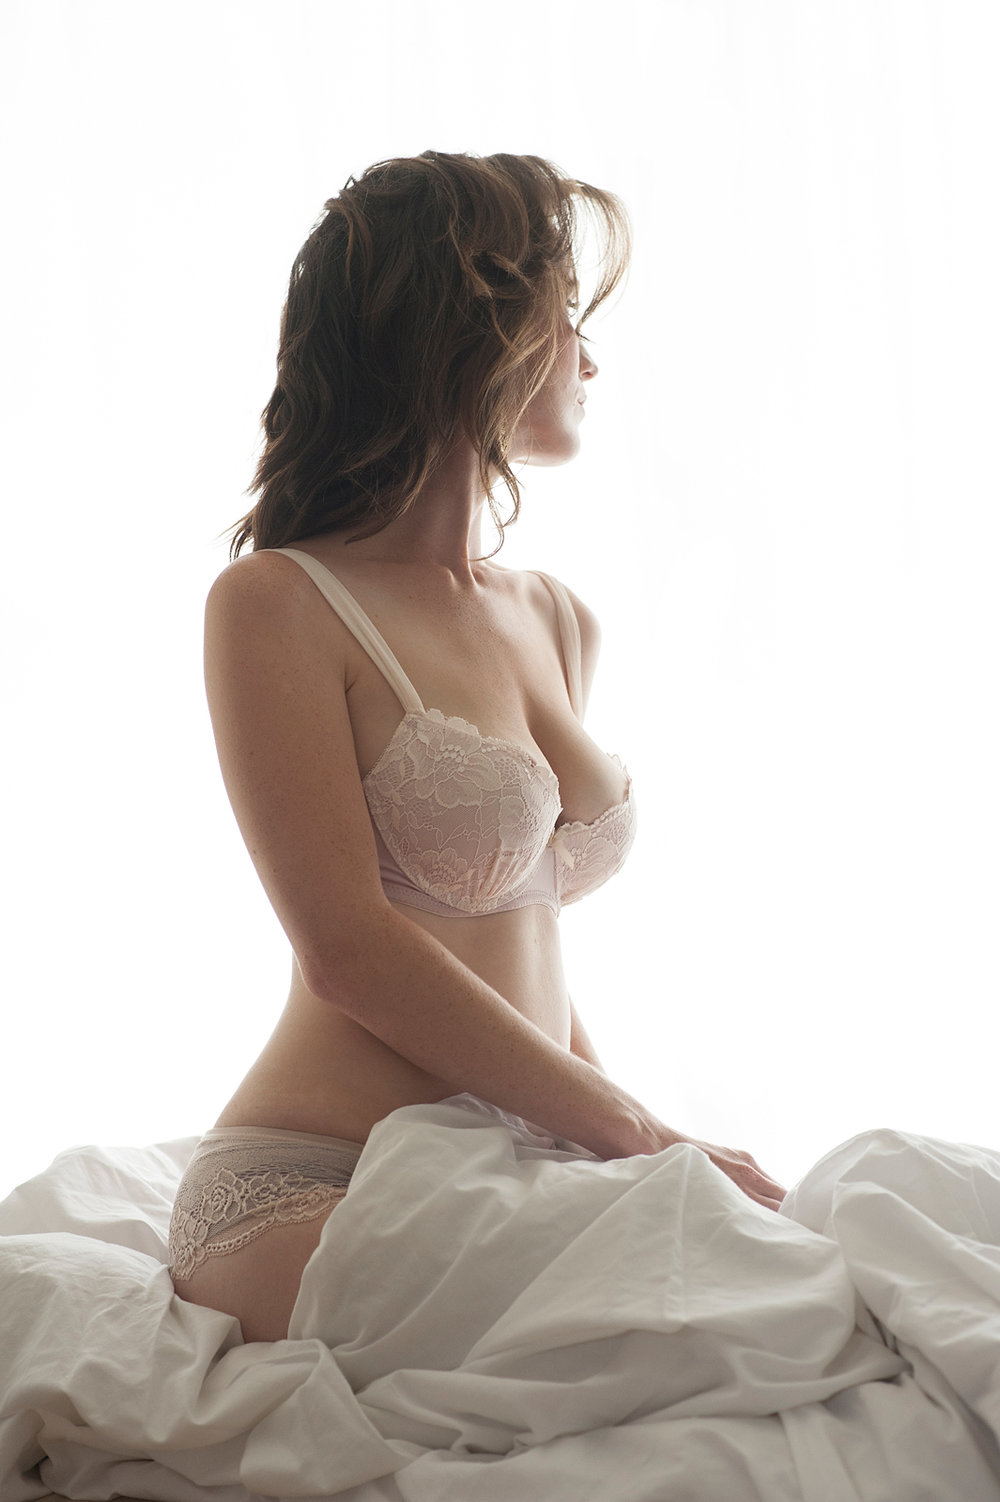 19-bra-panties-backlit-bed-blanket-looking-away-artistic-boudoir.jpg